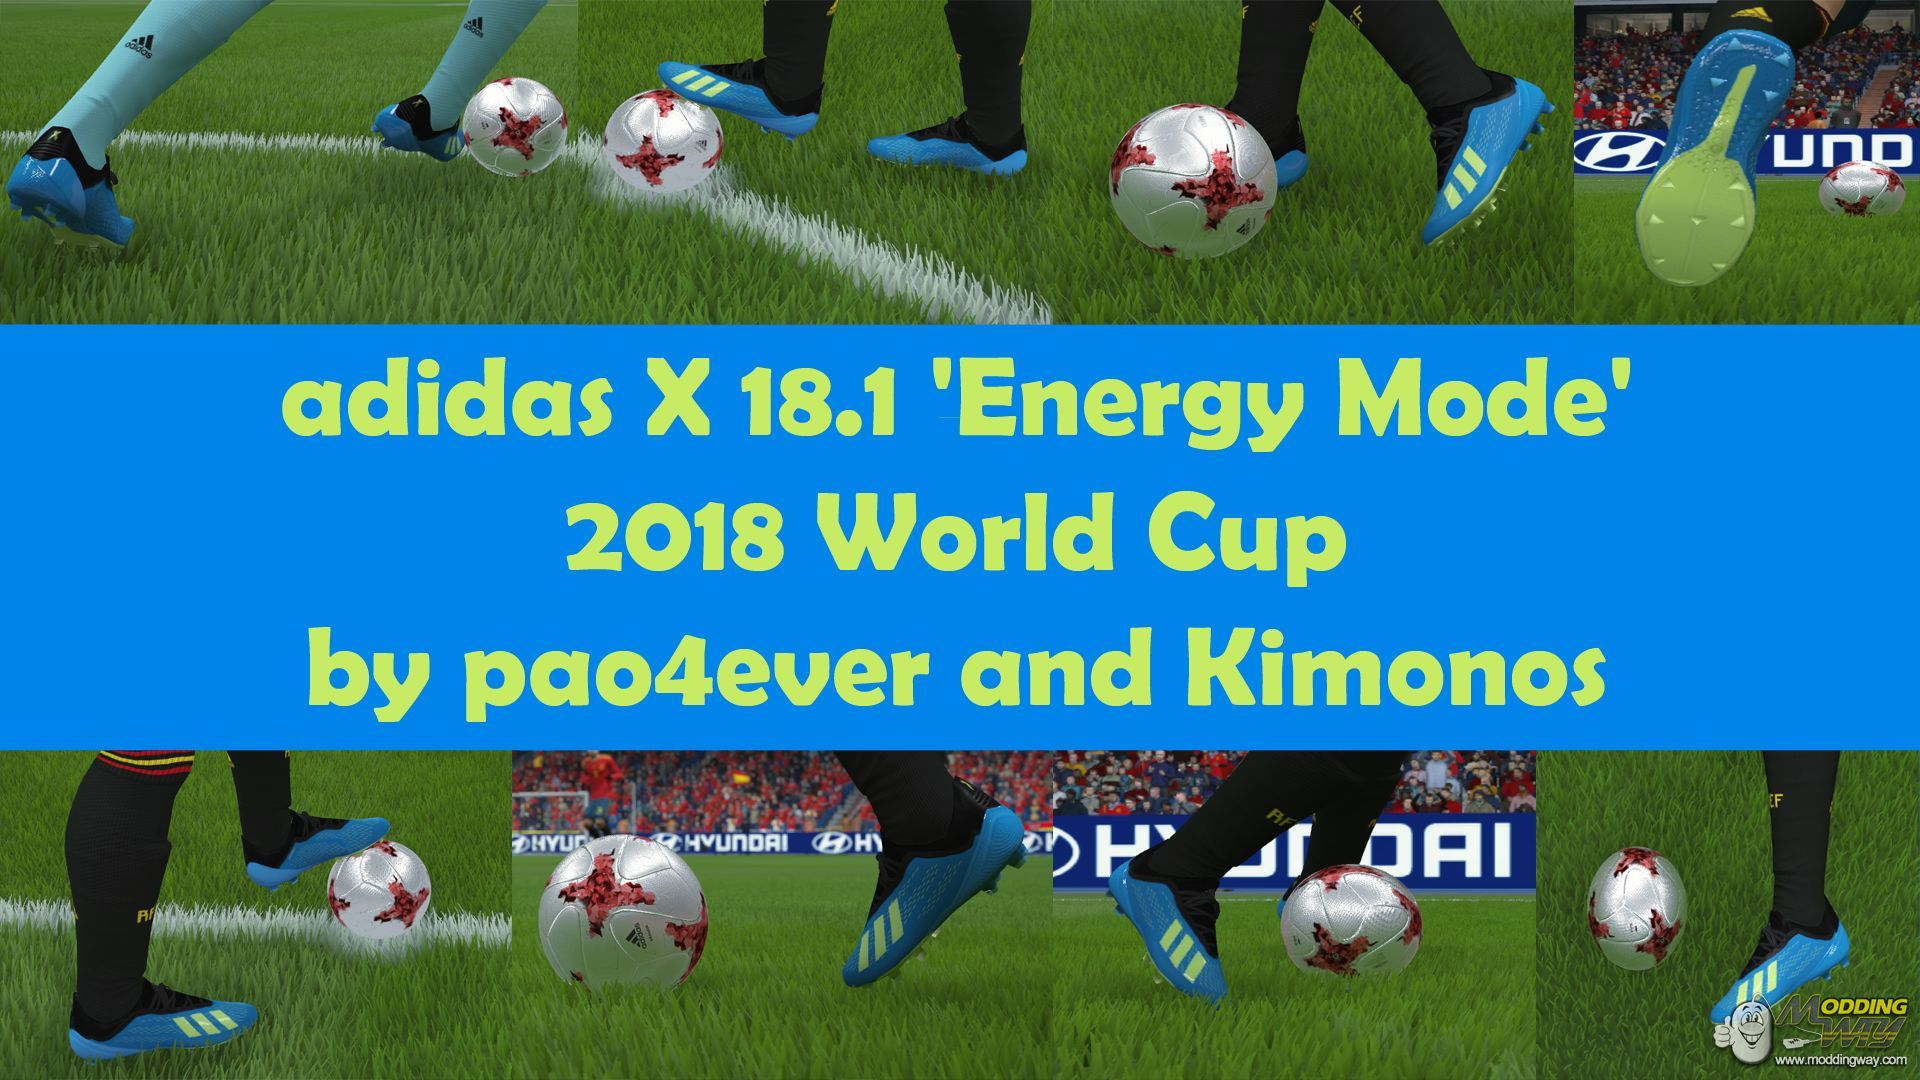 179dc97a8182 FIFA 16   Boots   adidas X 18.1  Energy Mode  2018 World Cup - FIFA 16